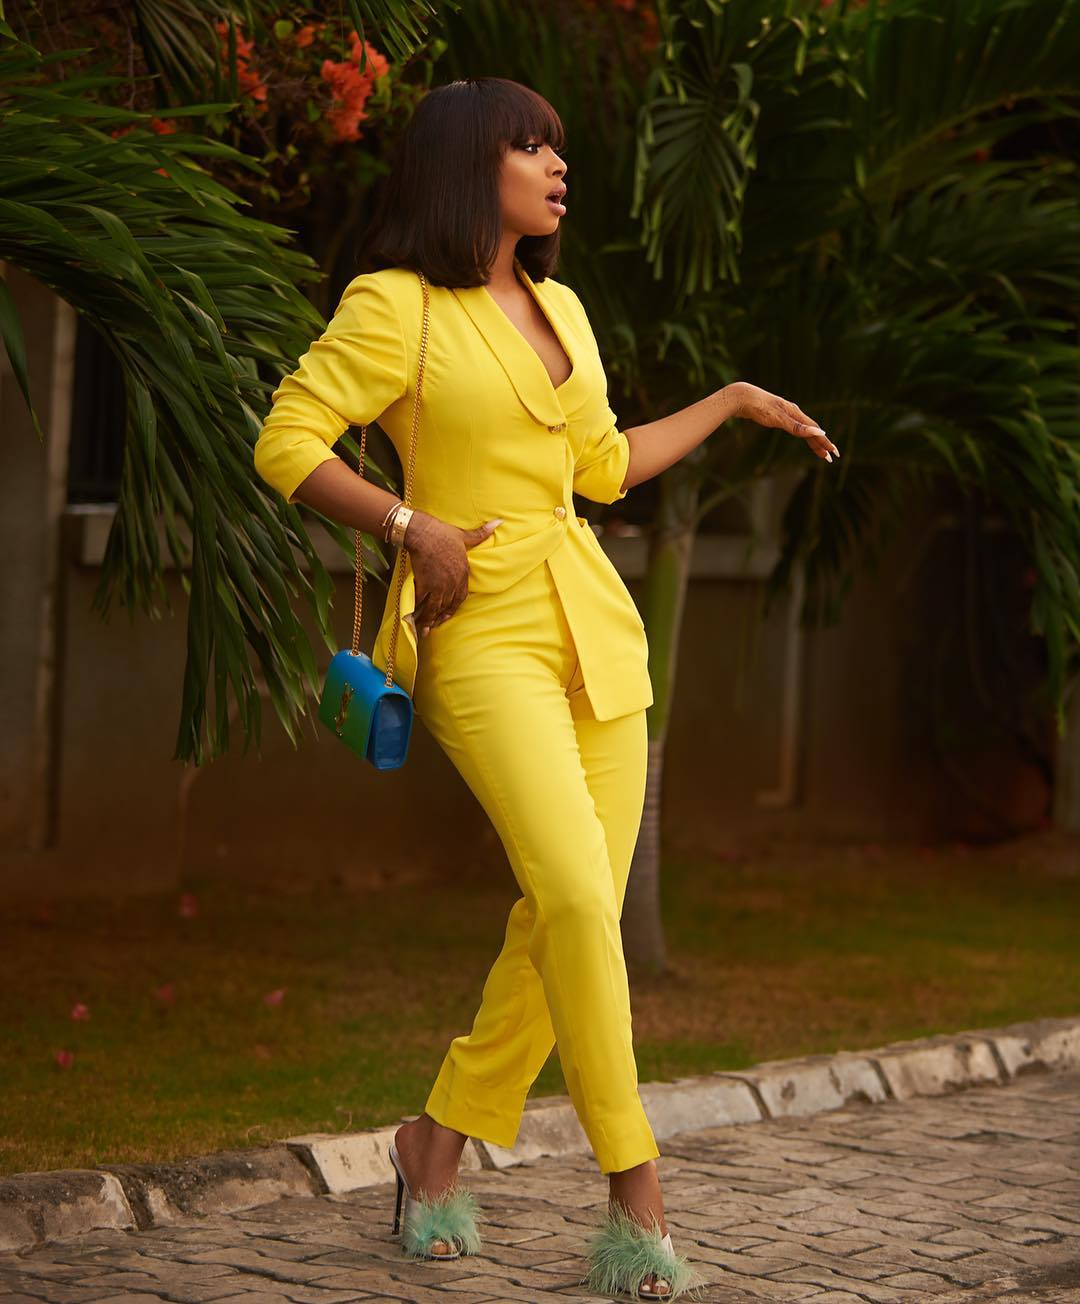 """""""The money green"""" – Toke Makinwa Says As She Shares Sultry Photo"""